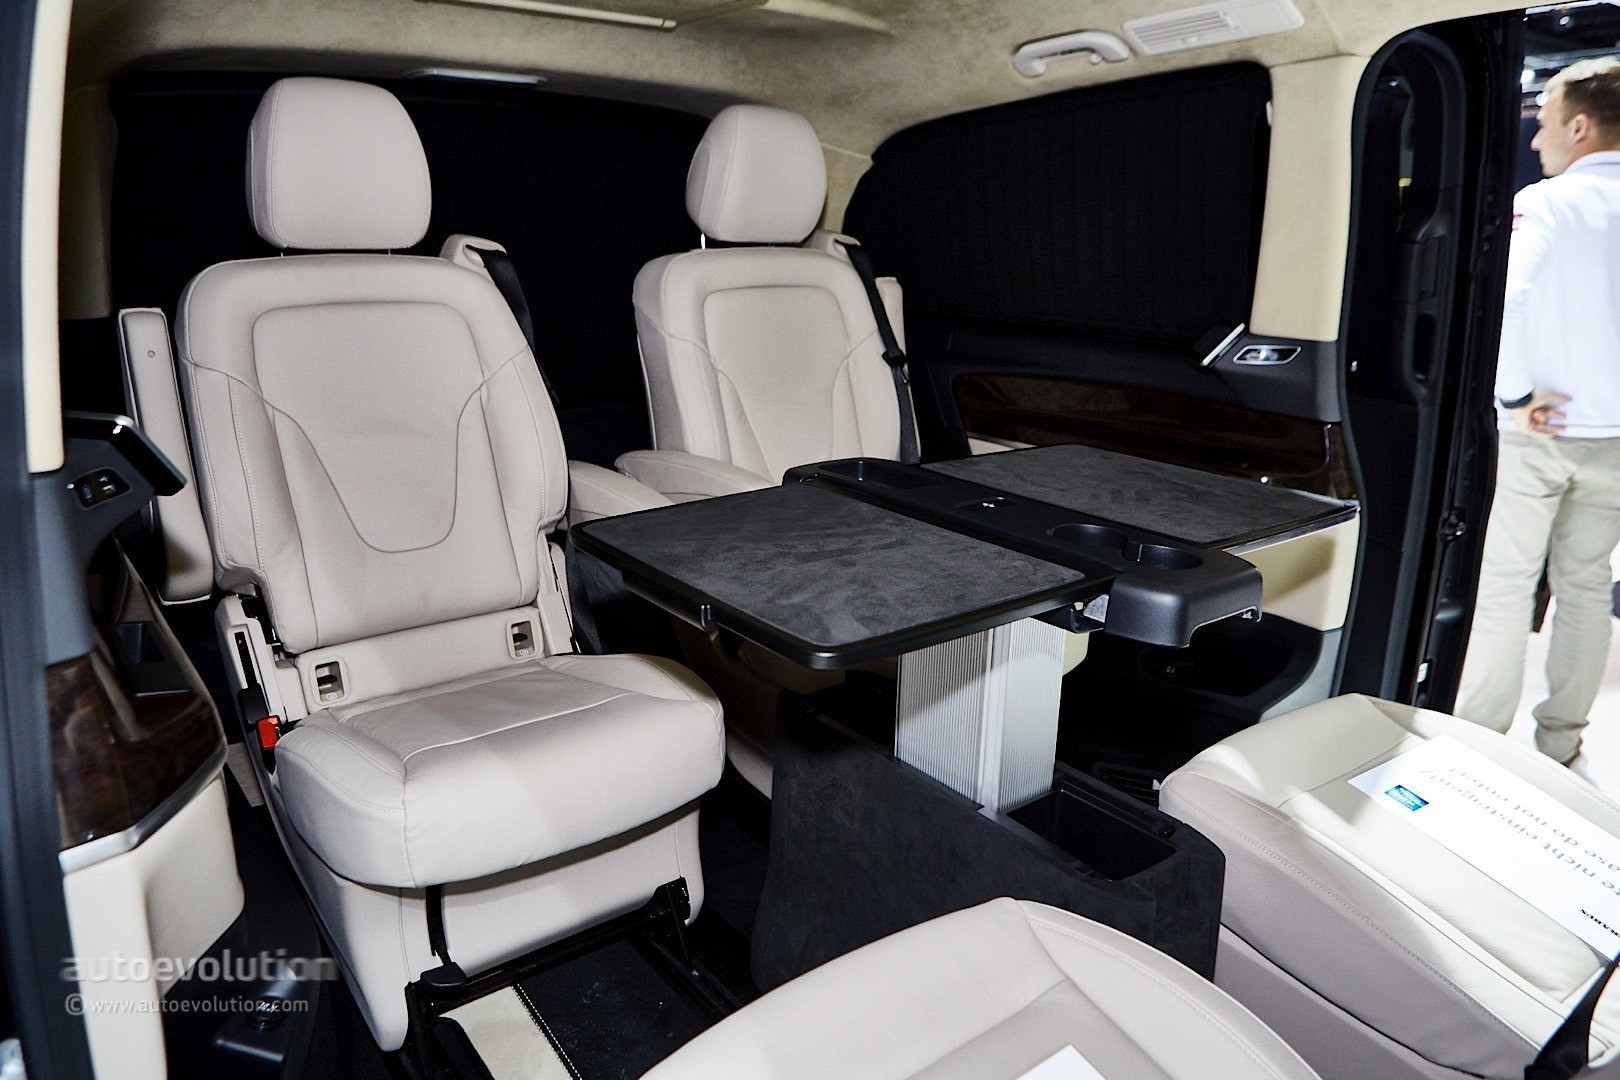 ' ' from the web at 'http://s1.cdn.autoevolution.com/images/news/gallery/brabus-sprinter-and-v-class-fill-the-luxury-van-gap-in-frankfurt-live-photos_22.jpg'